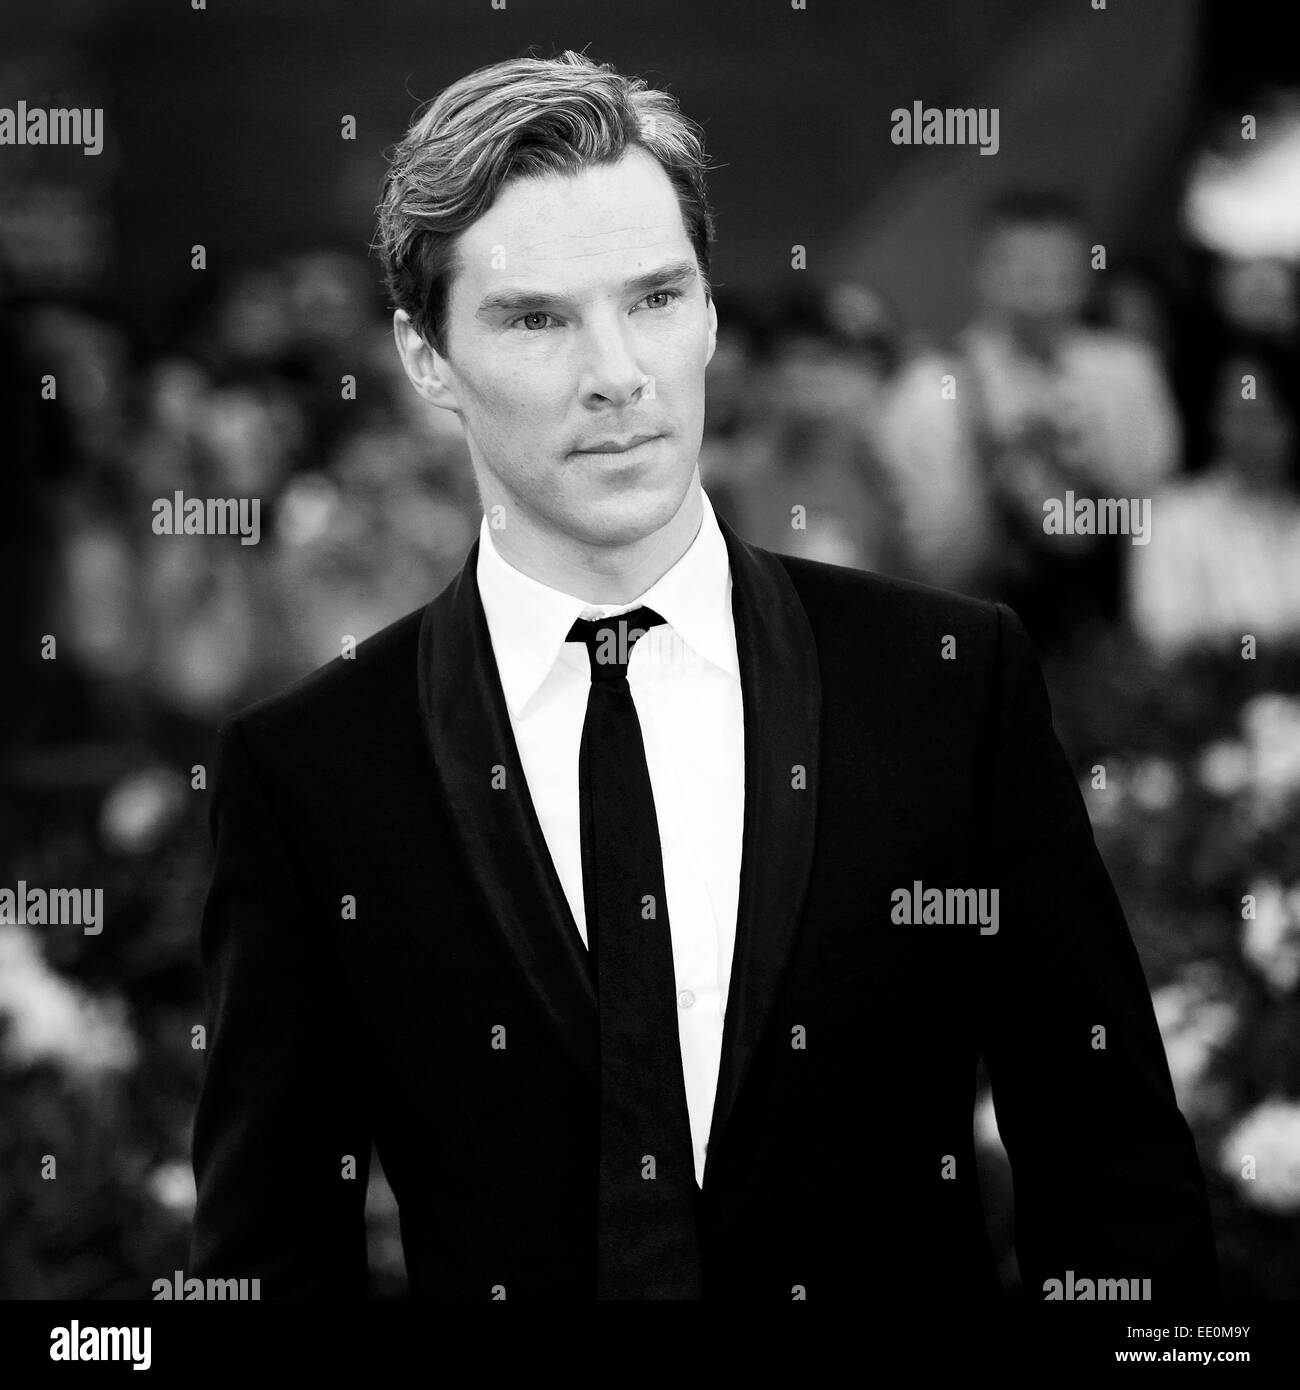 VENICE, ITALY - SEPTEMBER 05: Actor Benedict Cumberbatch attends the 'Tinker, Tailor, Soldier, Spy' premiere - Stock Image